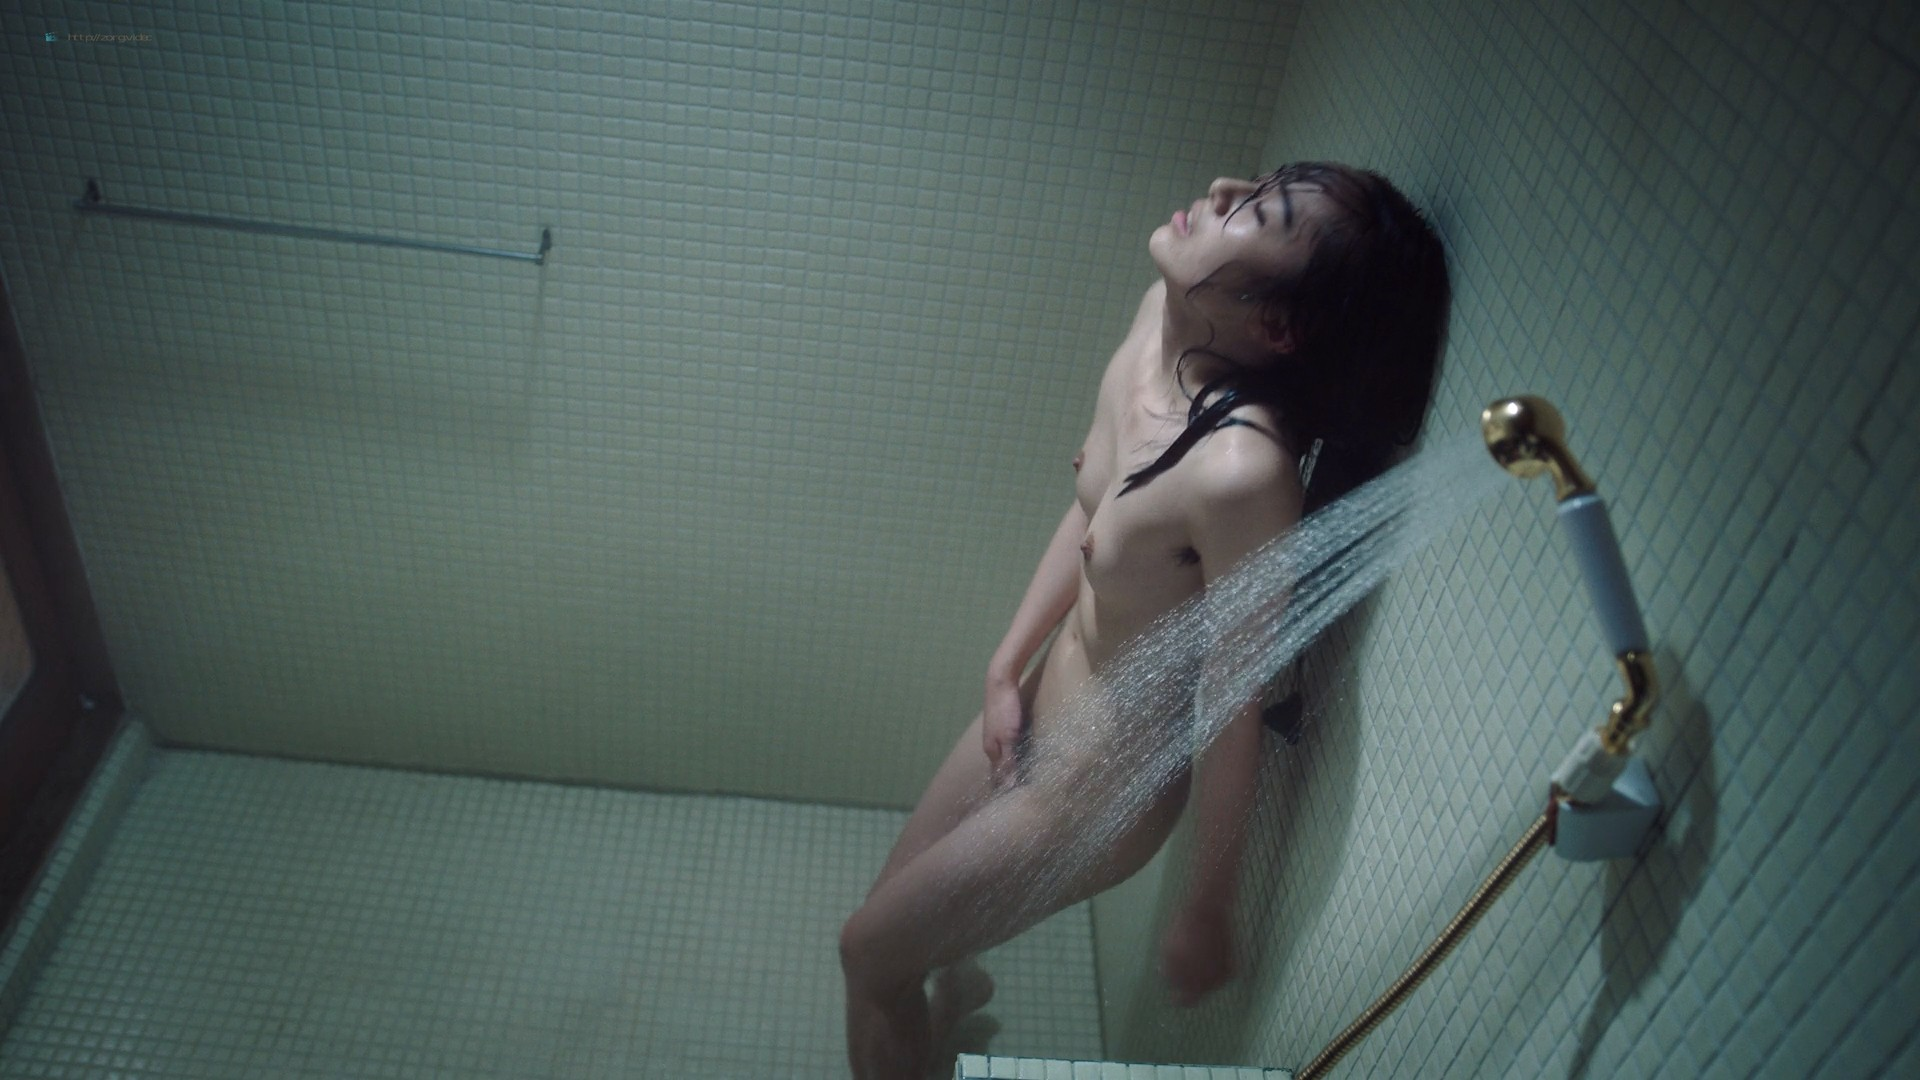 Misato Morita naked in the shower rest nude - The Naked Director (2019) s1e2 HD 1080p (5)